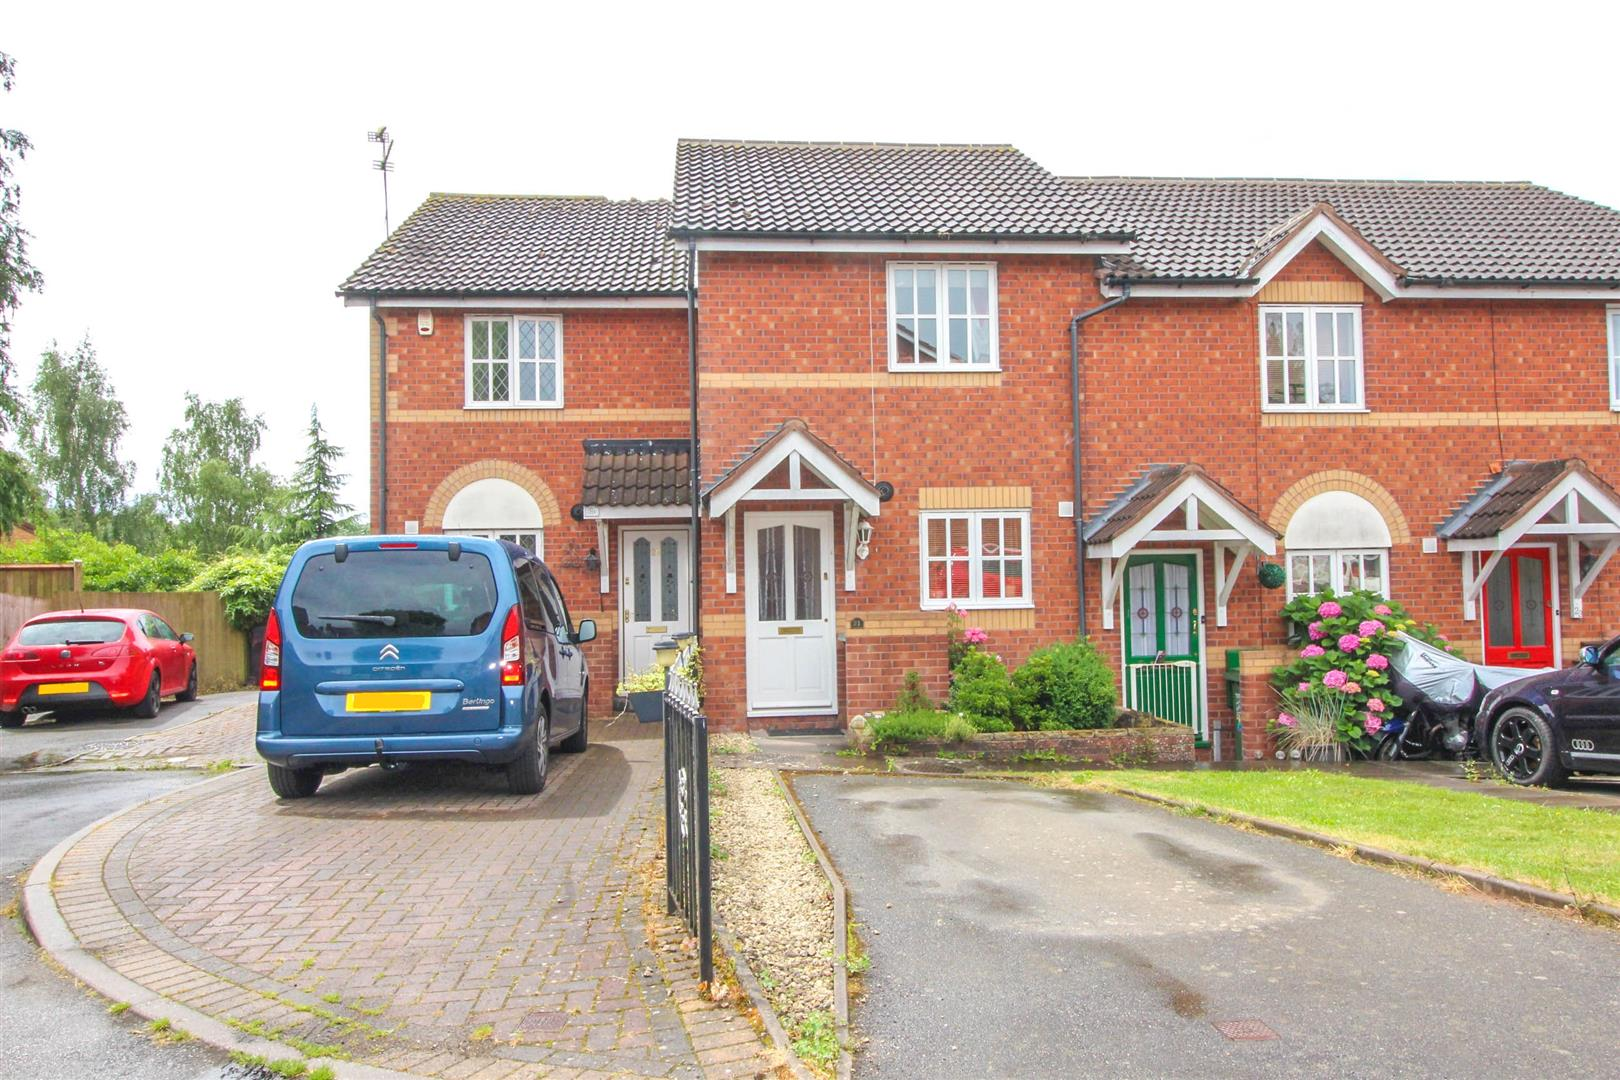 2 Bedrooms Property for sale in Fir Tree Close, Redditch